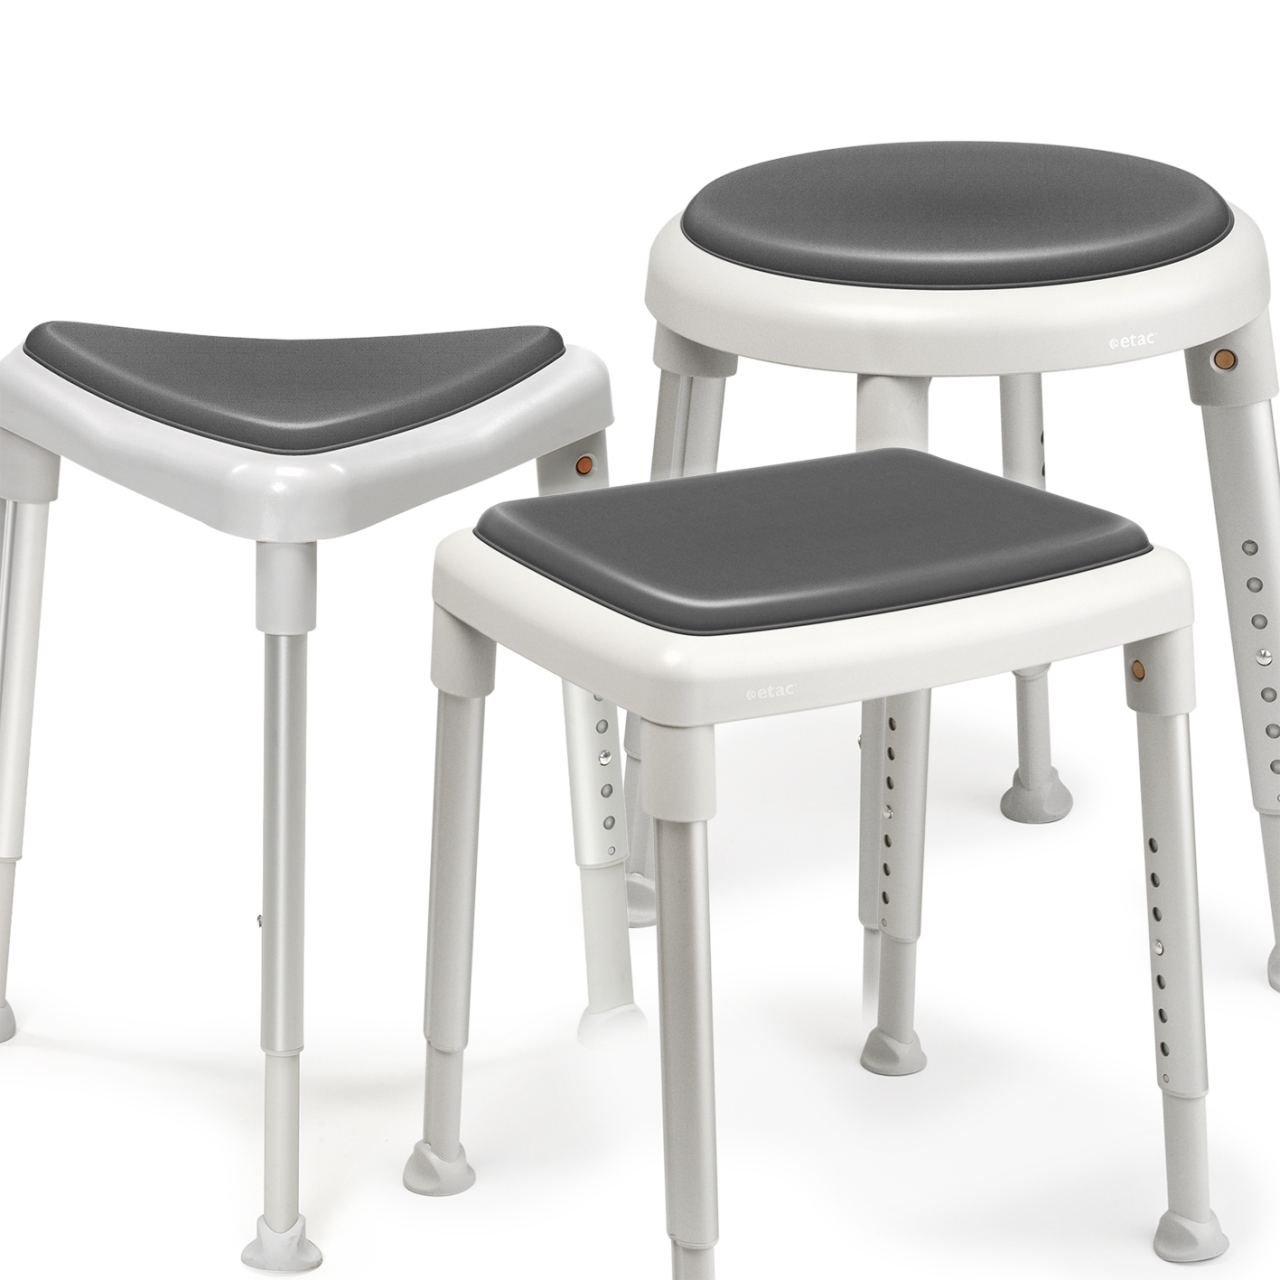 accessories - Shower Stools